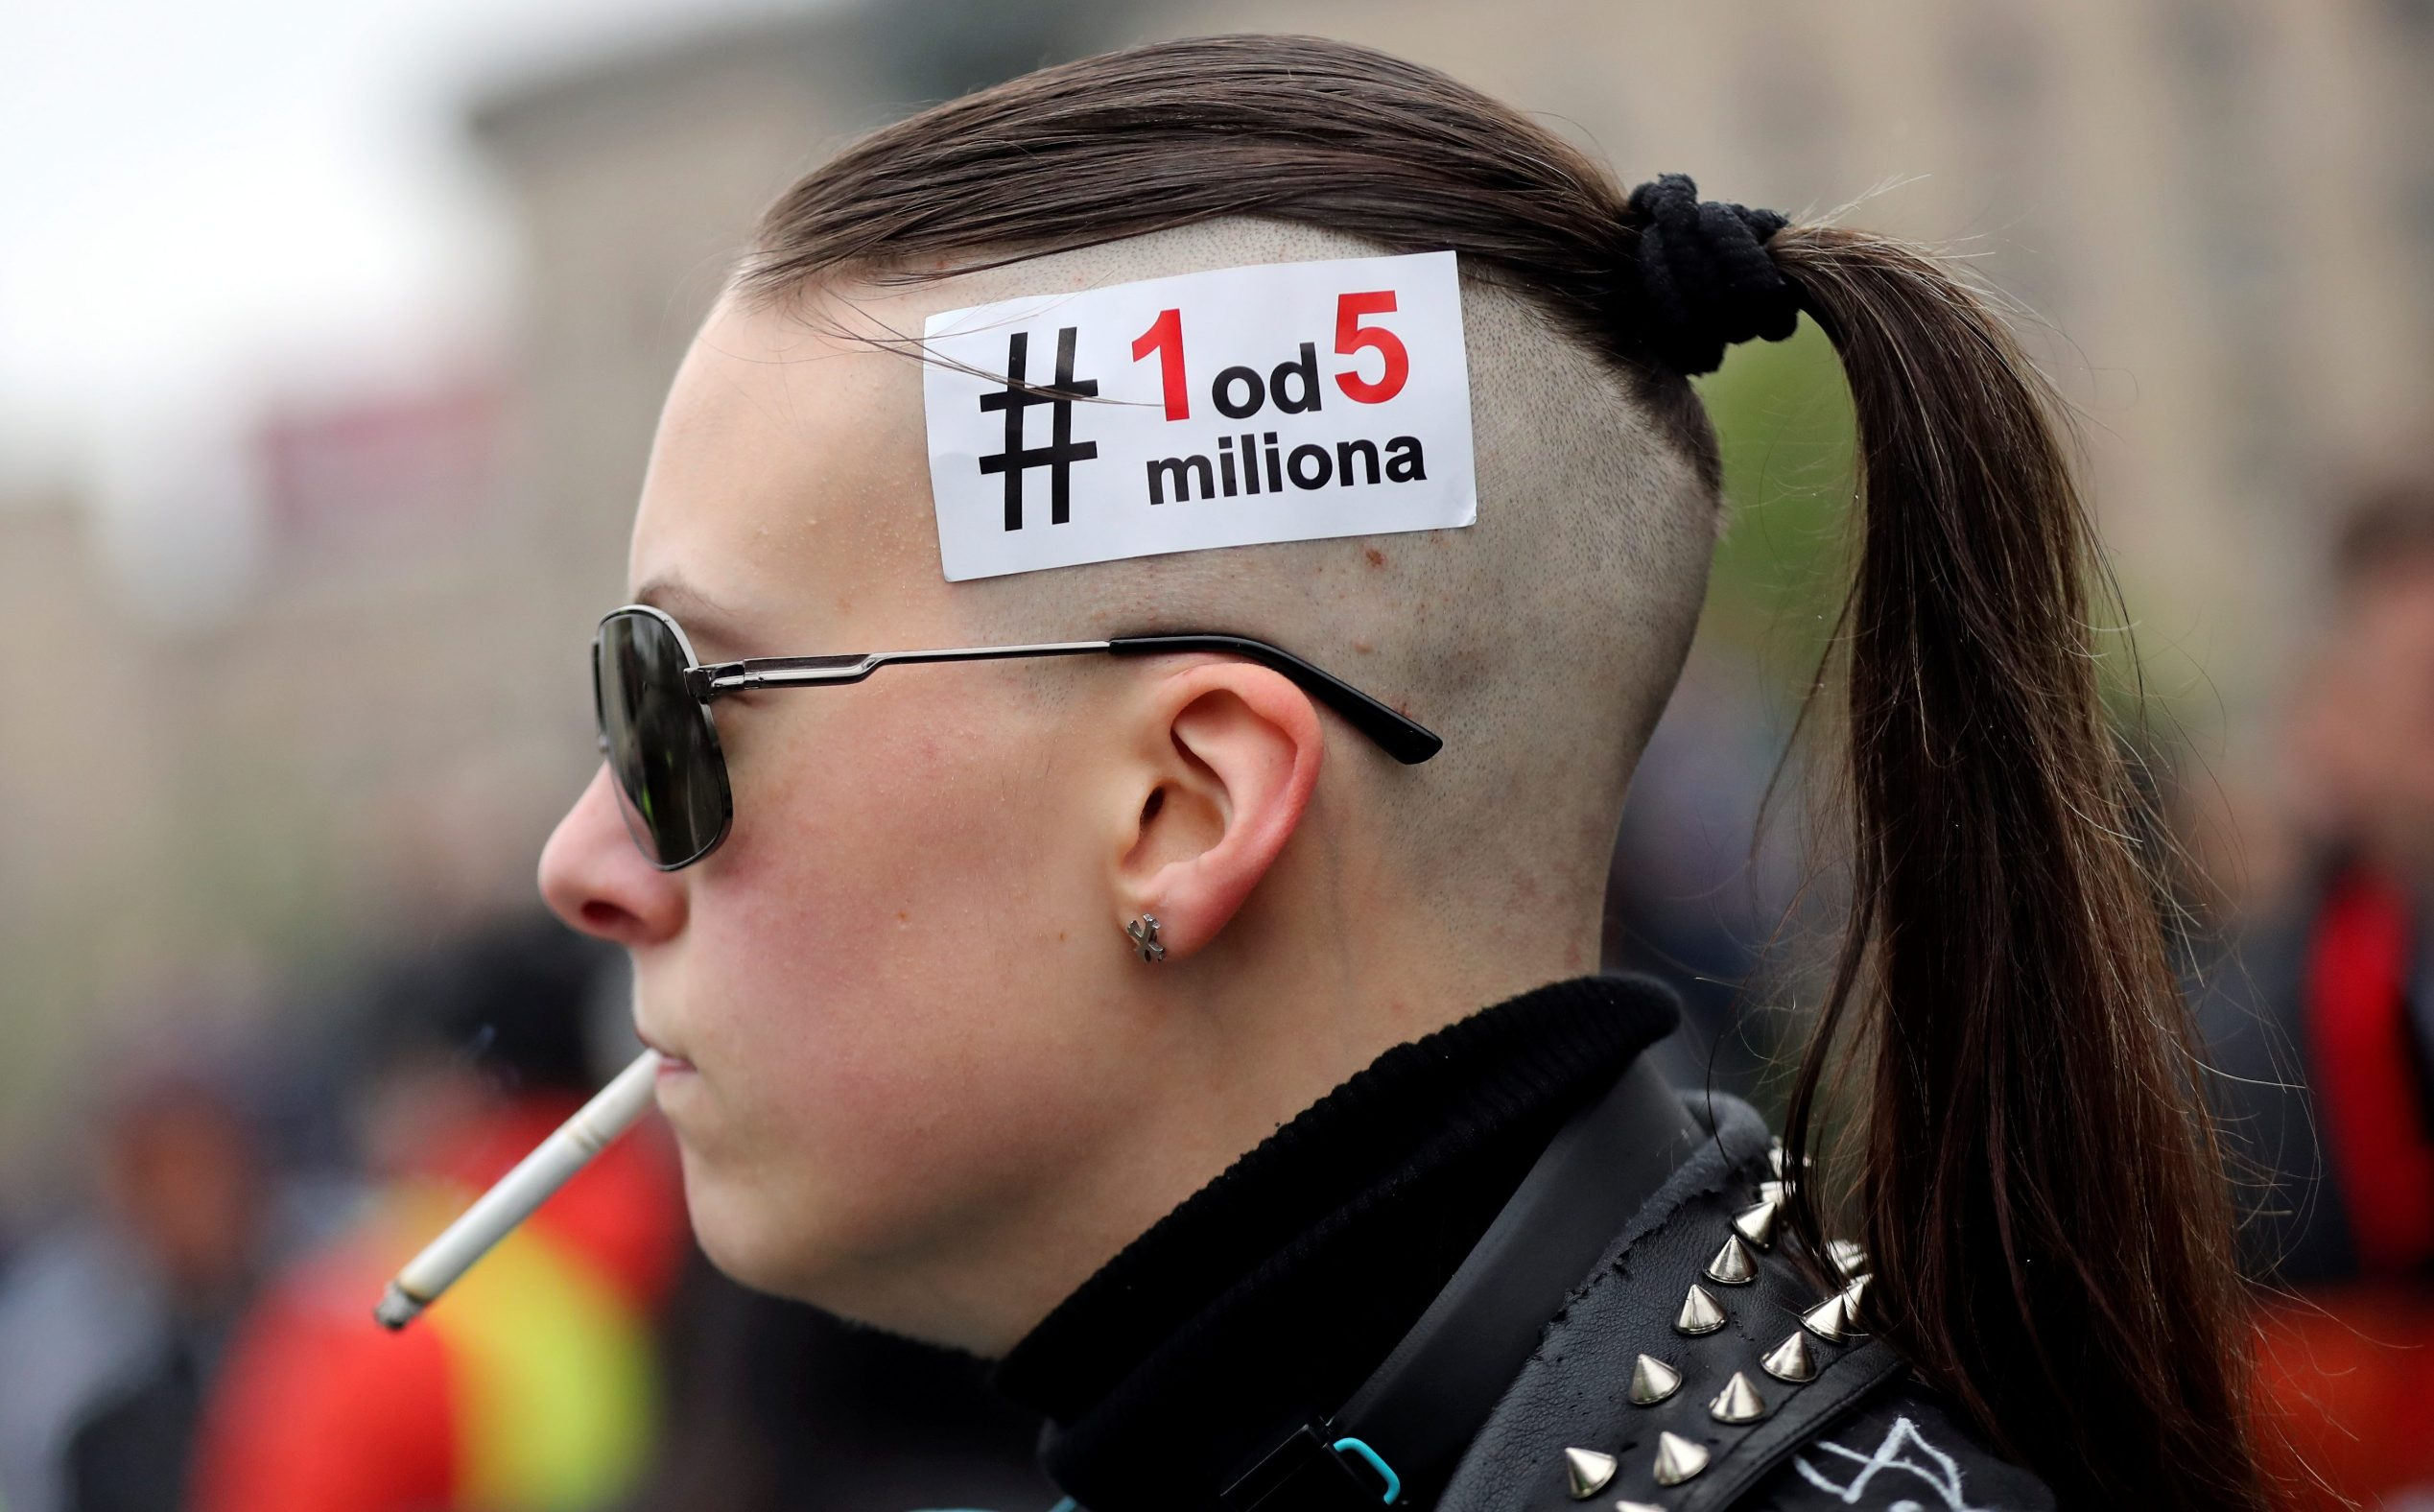 A demonstrator wears a sticker during a protest against Serbia's President Aleksandar Vucic and his government, in front of the Parliament Building in central Belgrade, Serbia, April 13, 2019. The sticker reads